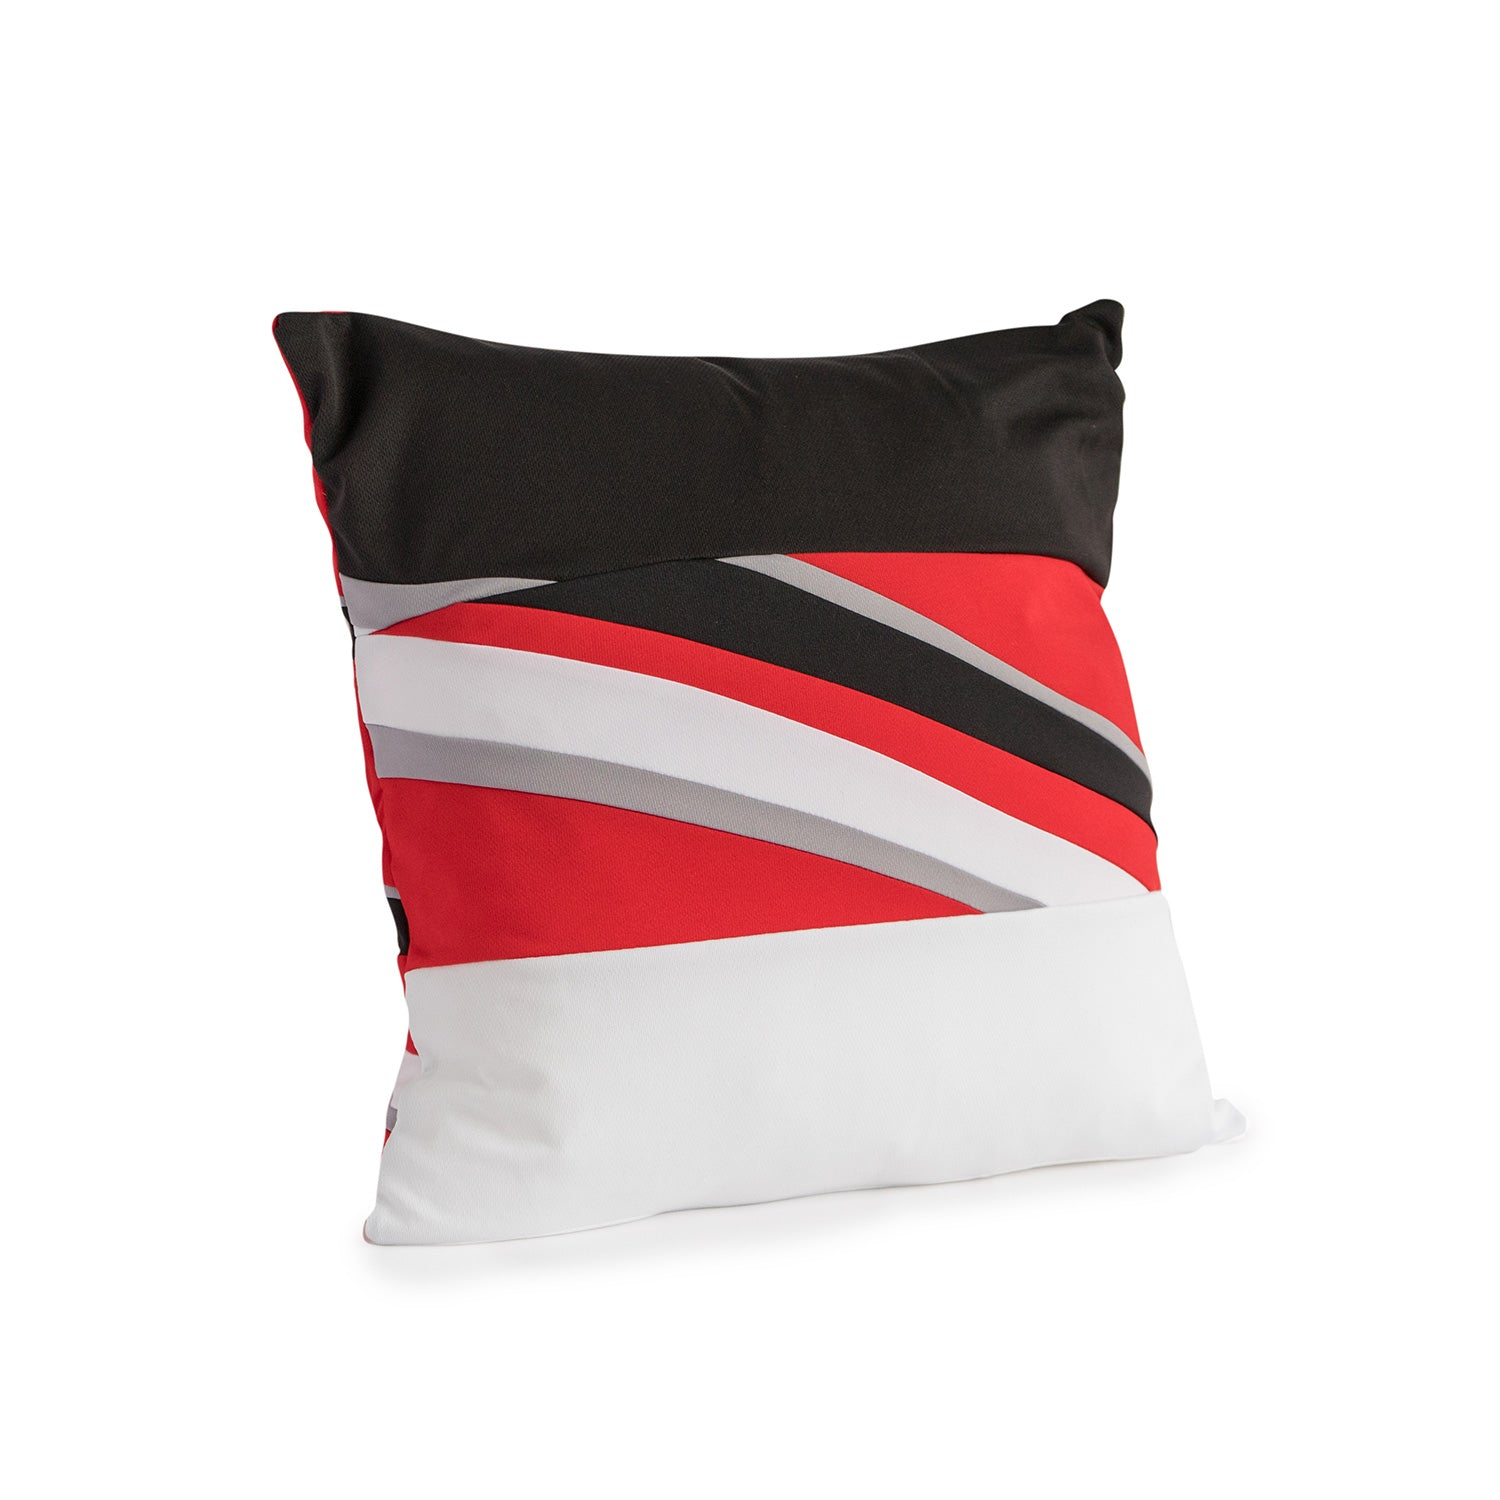 Portland Trail Blazers Upcycled Jersey Pillow Accessories - Looptworks